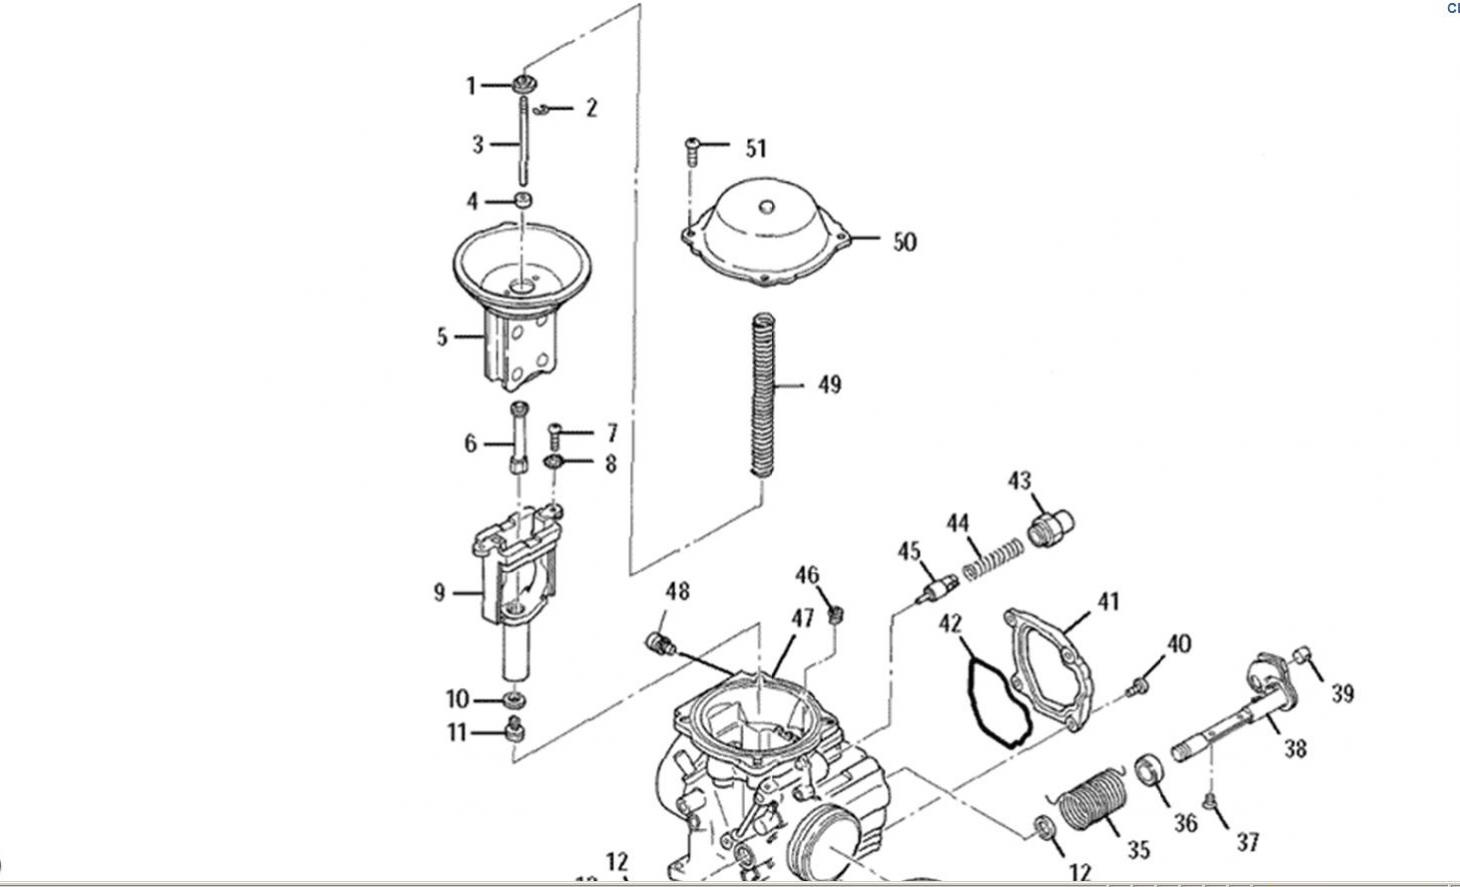 2004 polaris sportsman 700 engine diagram